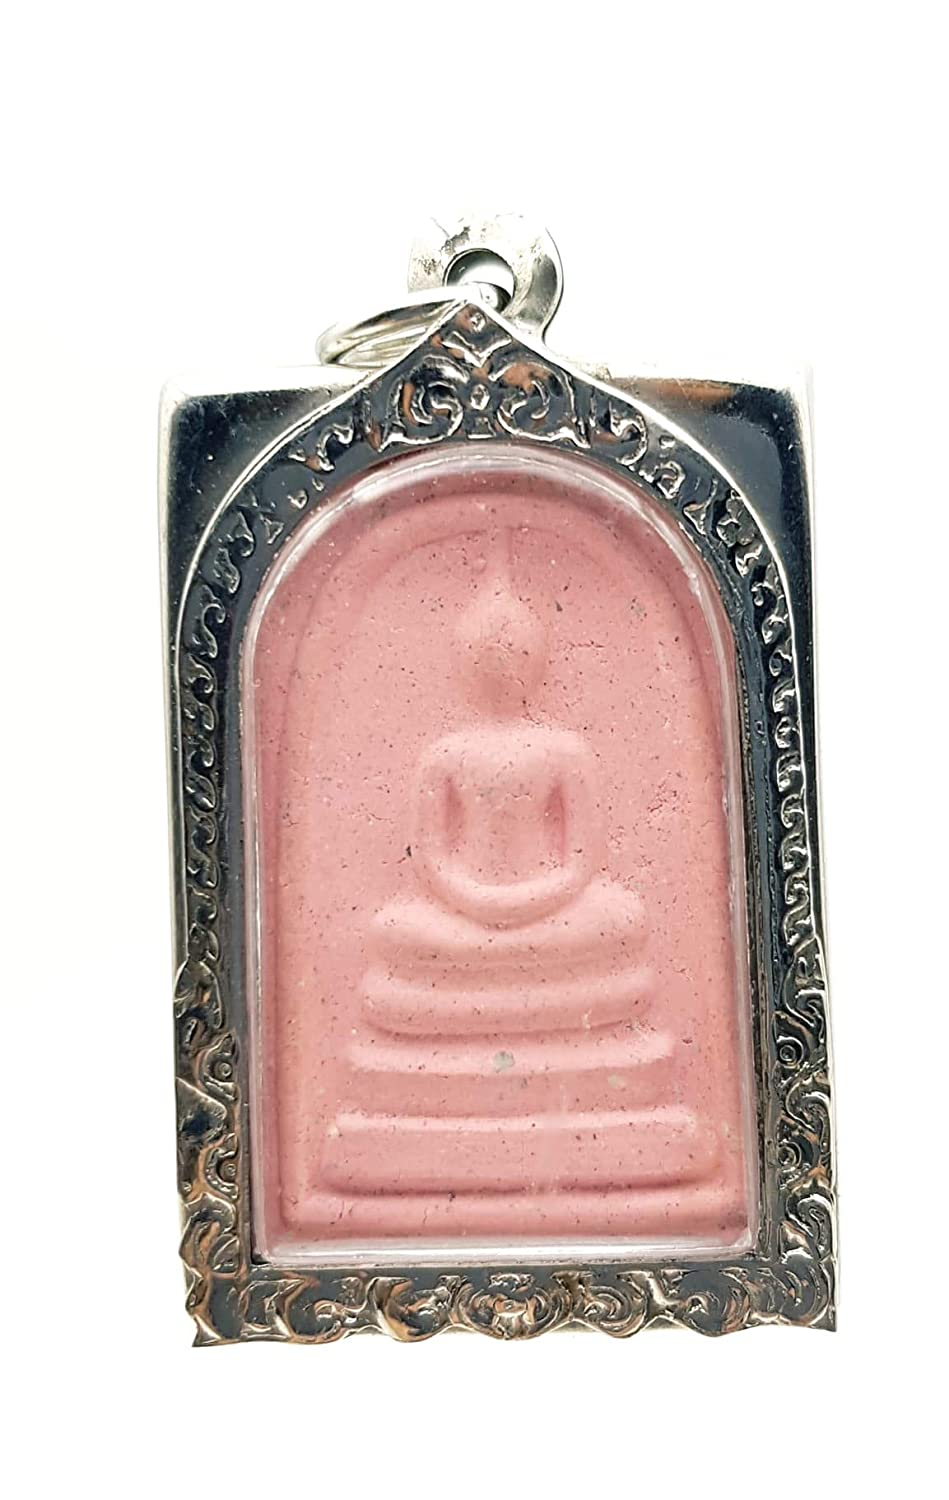 Thai amulets Phra Somdej Prab Pairee 1st Batch Lucky pendant Protection talisman